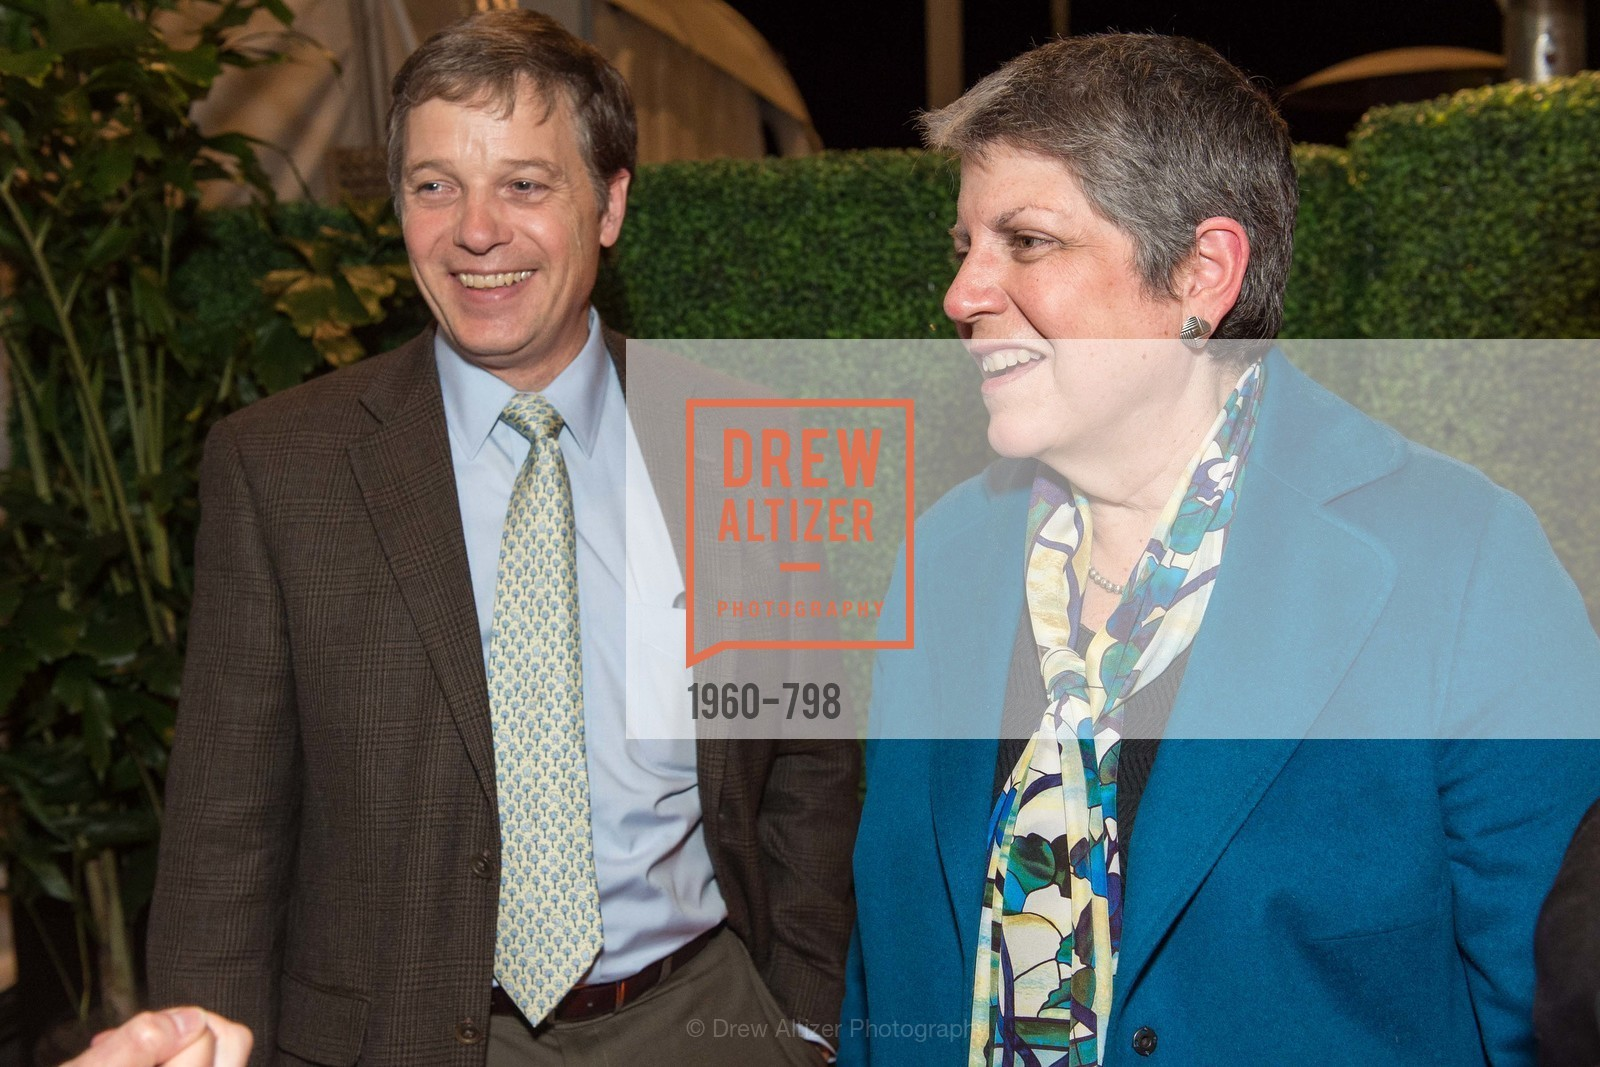 Janet Napolitano, CALIFORNIA ACADEMY OF SCIENCES - Big Bang Gala 2015, US, April 24th, 2015,Drew Altizer, Drew Altizer Photography, full-service agency, private events, San Francisco photographer, photographer california